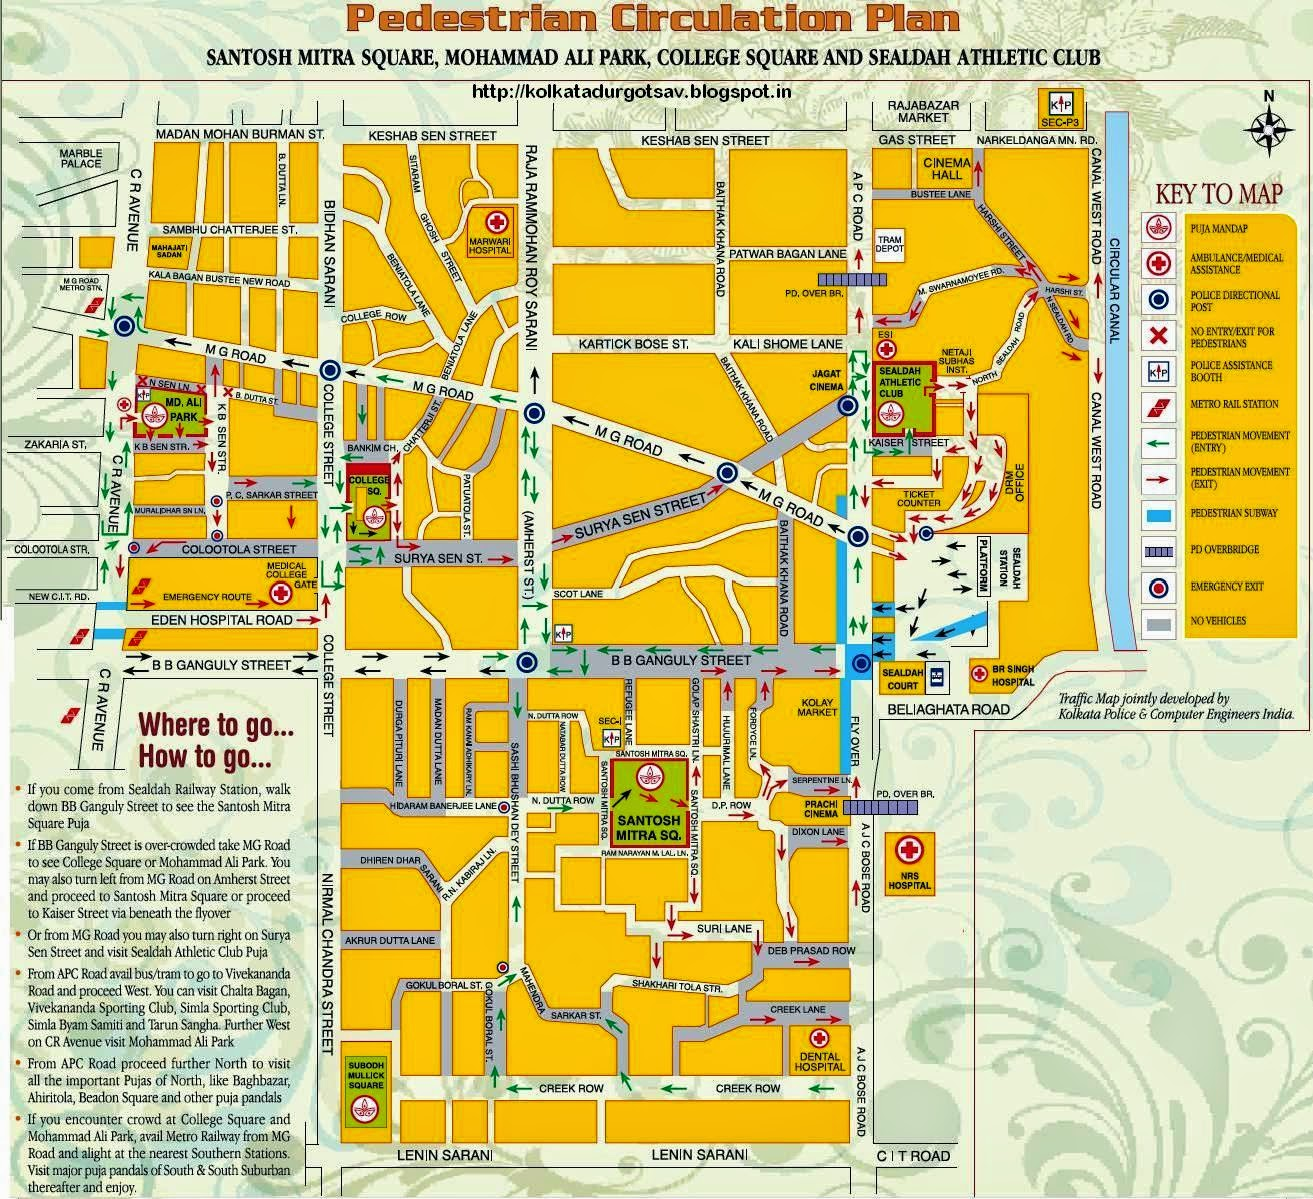 Pedestrian Circulation Map